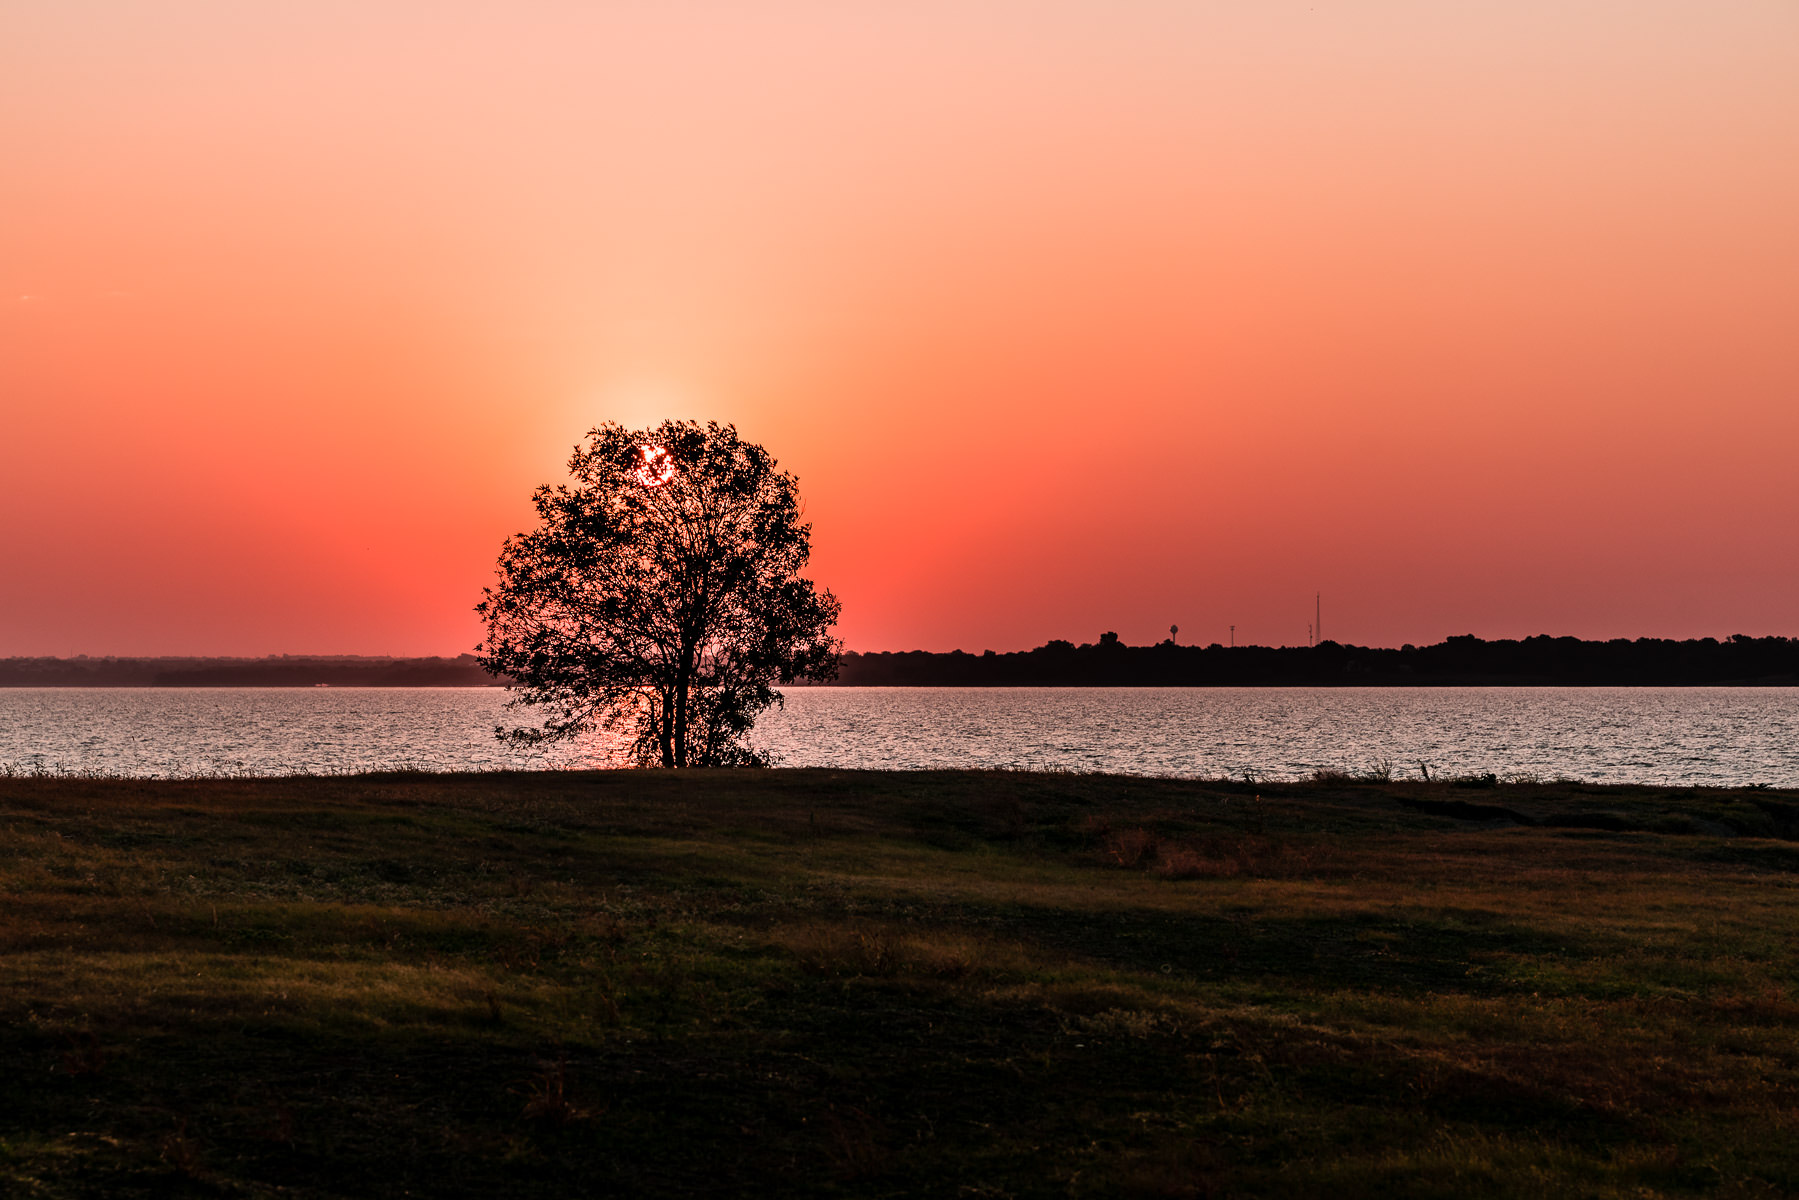 The sun rises on a tree along the shore of North Texas' Lake Lavon.